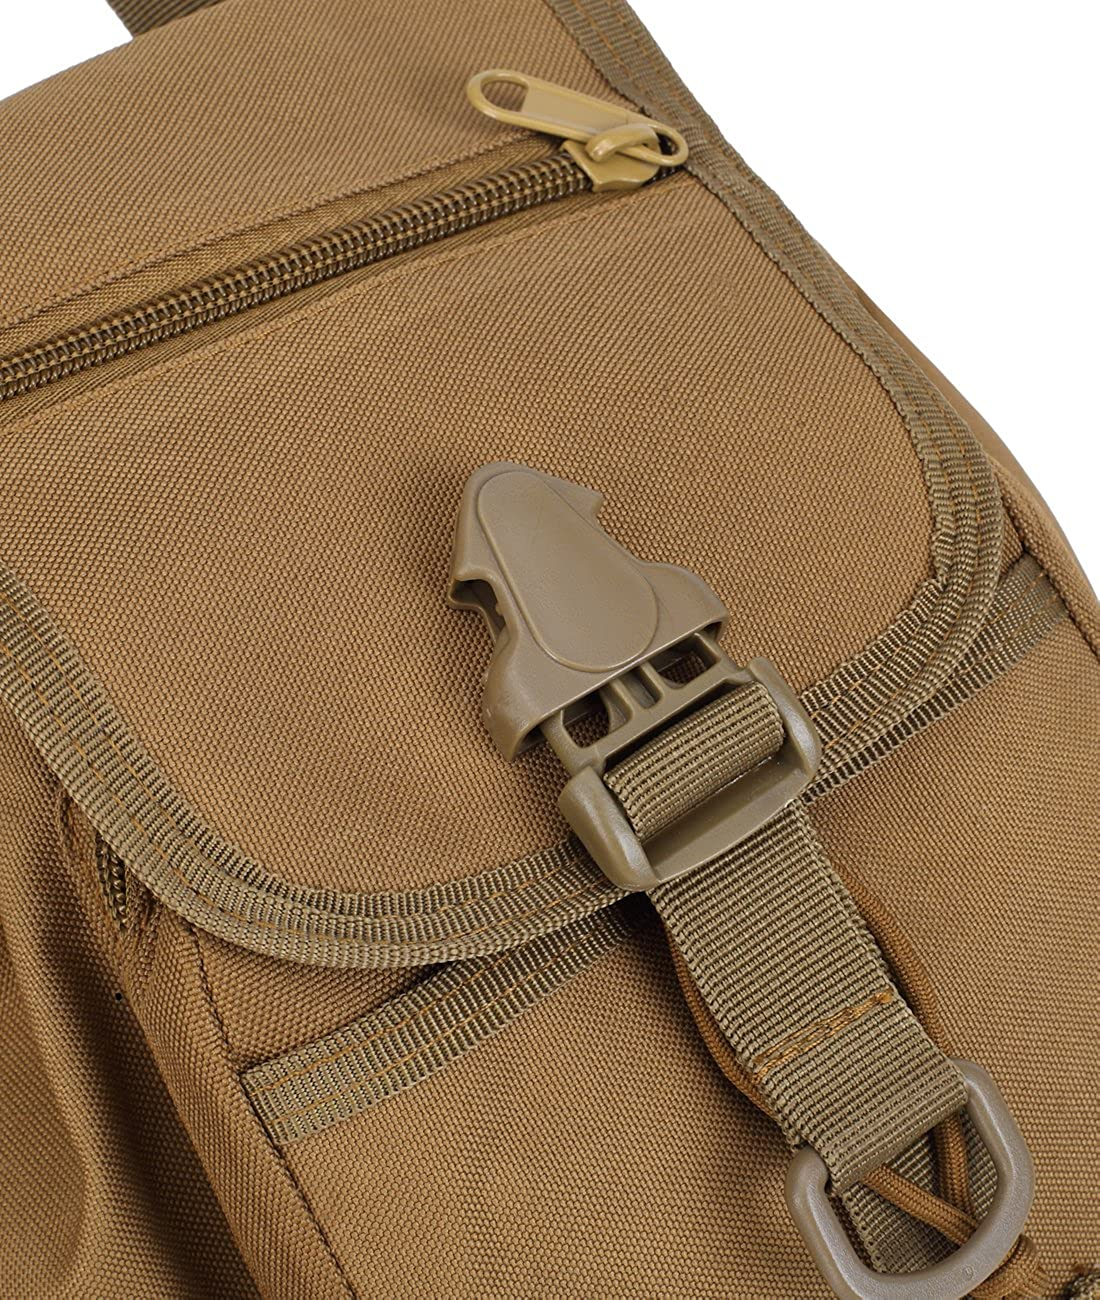 Amazon.com: Mochila Small Tactical Backpack for Boys and Girls Mini Backpack Travel lightweight Daypack Casual Classic Backpack School Rucksack 10L (khaki): ...